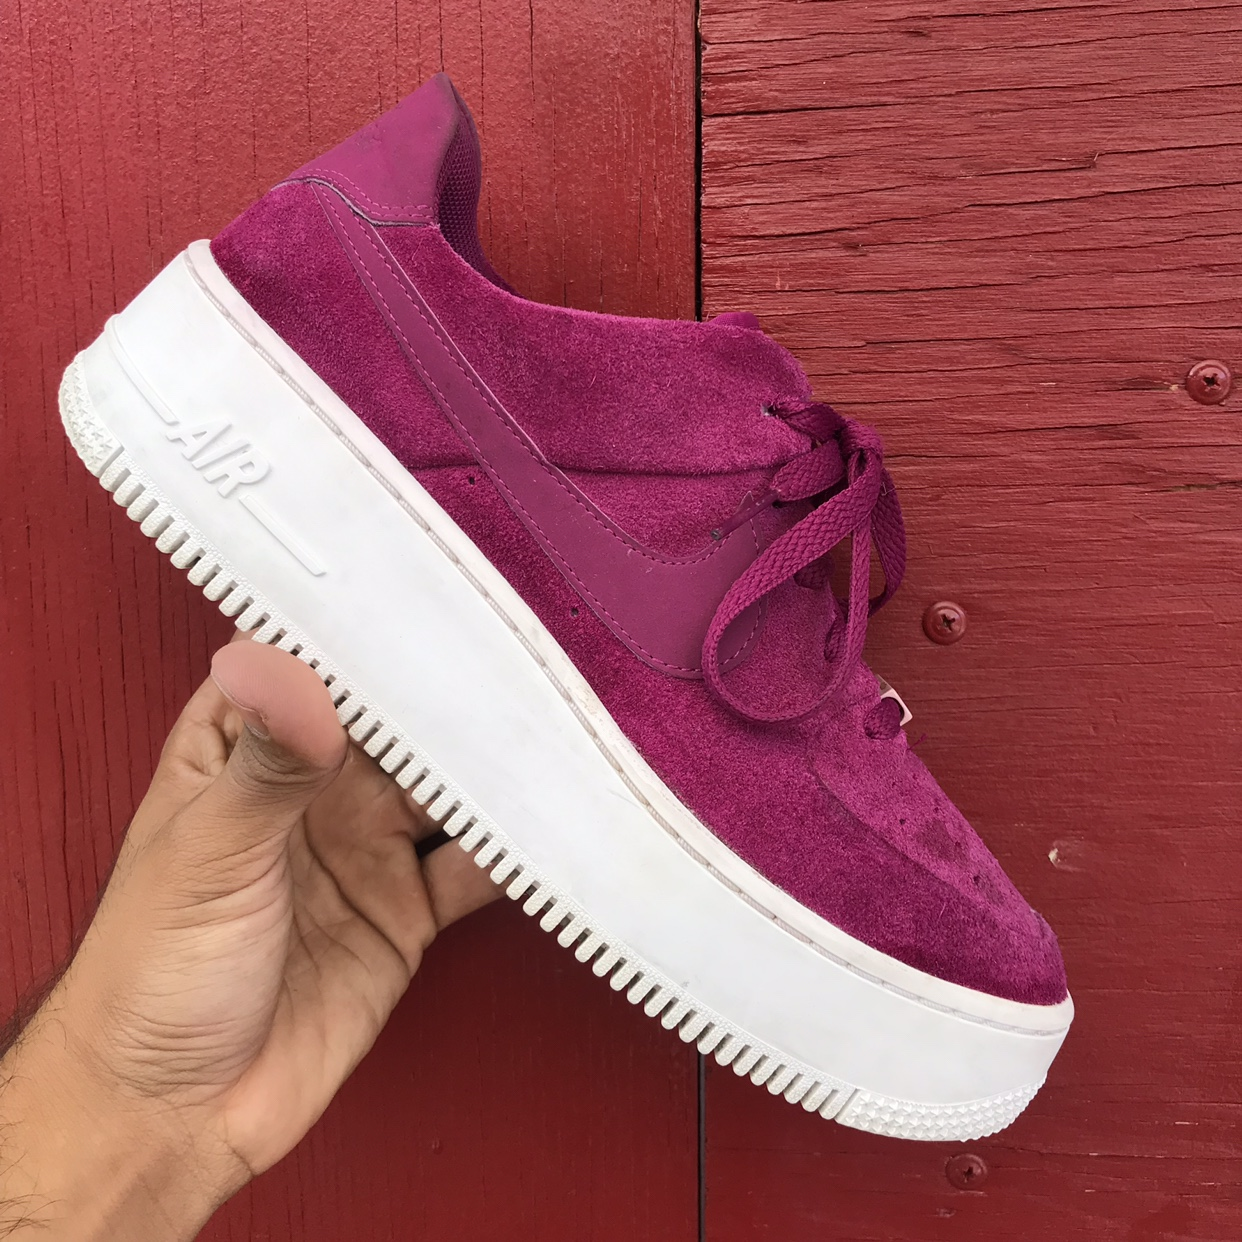 Nike Air Force 1 Sage Low True berry Size 8.5 for Depop